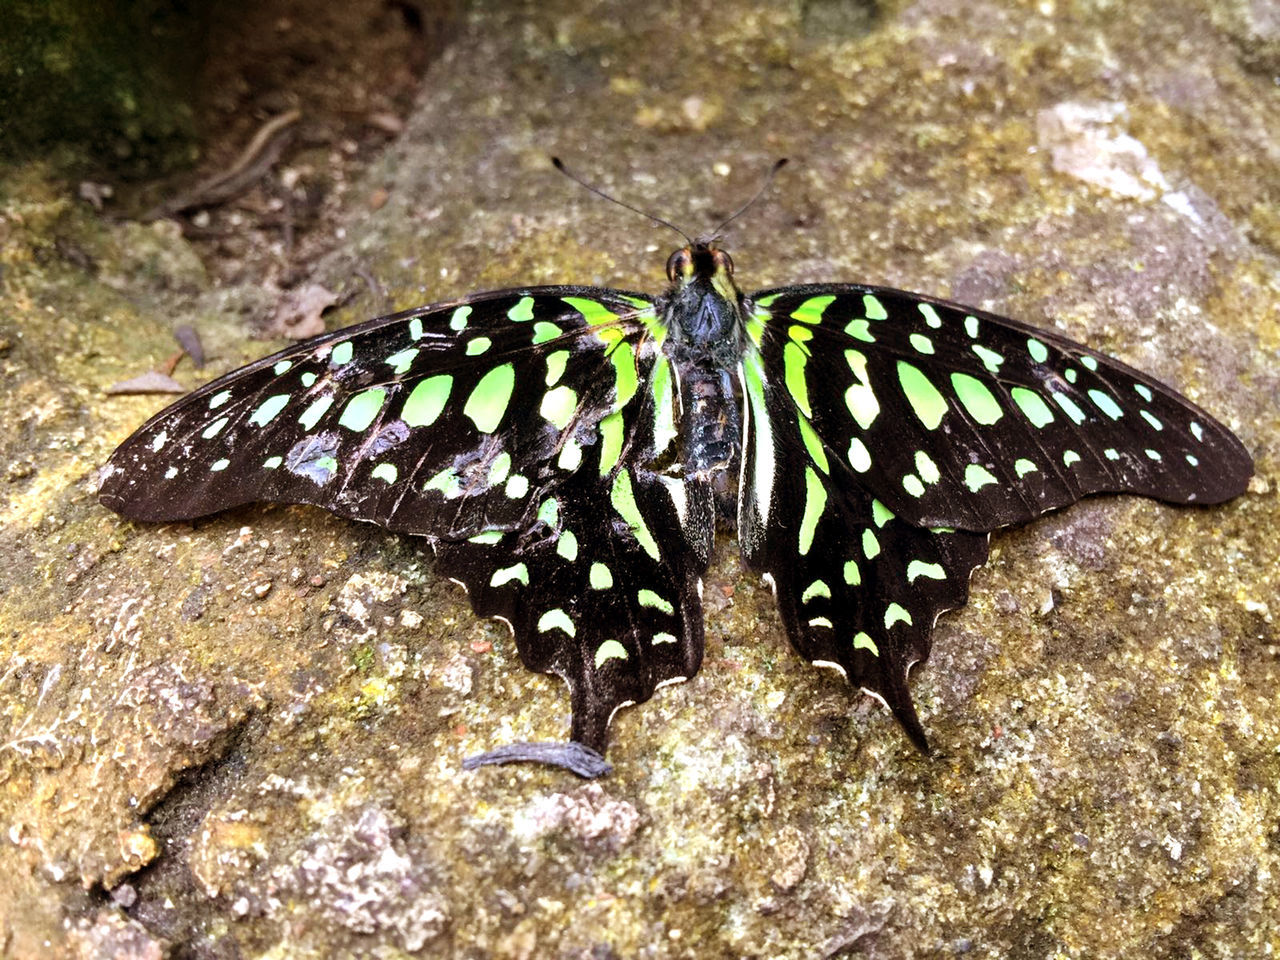 animal themes, animals in the wild, one animal, animal wildlife, insect, nature, butterfly - insect, no people, outdoors, day, animal markings, close-up, full length, beauty in nature